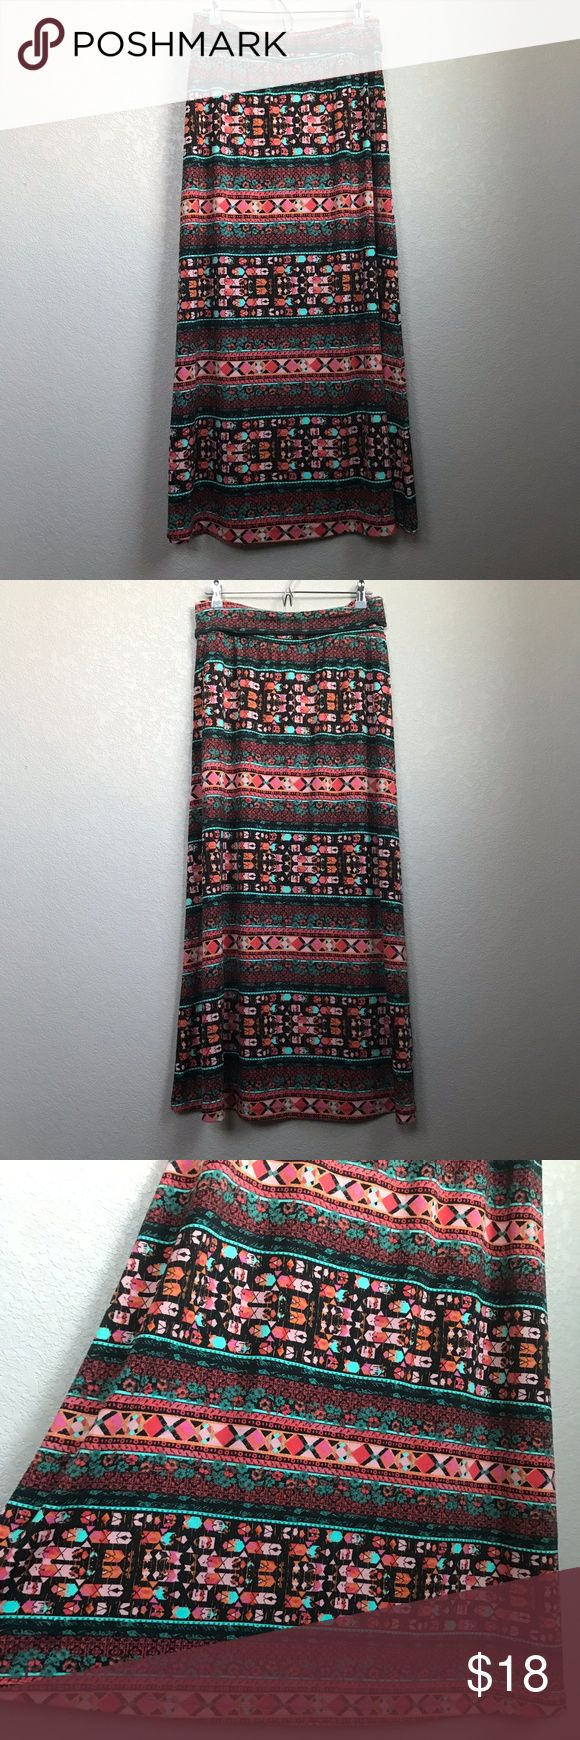 "Mossimo Long Stretch Maxi Skirt Aztec Print Medium Mossimo Supply Co long, aztec maxi skirt. Multi-color, multi-pattern. Stretch. Geometric. Boho. Size medium.  Excellent pre-owned condition!  Total length: 37""  Waist measured flat straight across: 15 1/2""  [V] Mossimo Supply Co. Skirts Maxi"